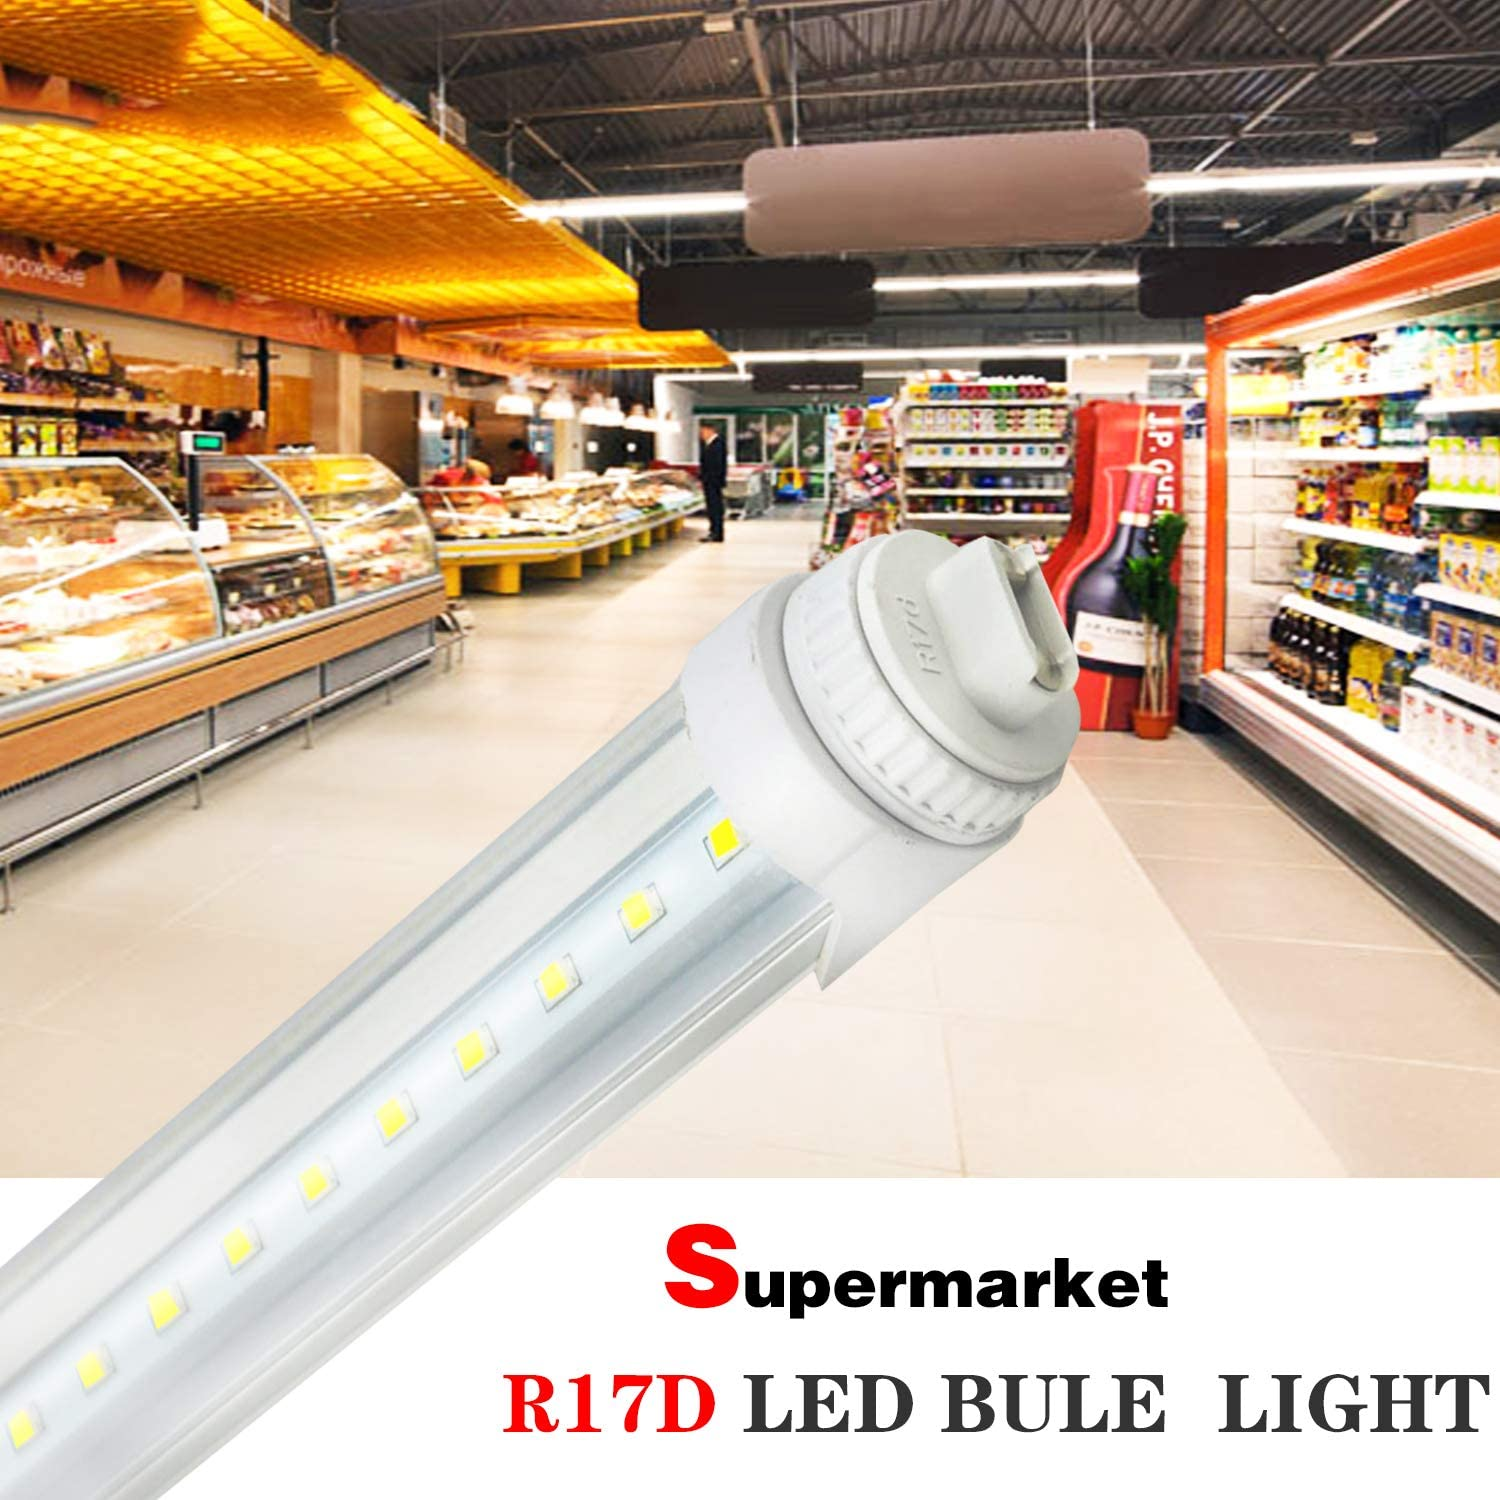 R17D 6FT 10Pack 30W R17D Base 6Ft LED Tube Light Fluorescent Replacement for F72T12//CW//HO